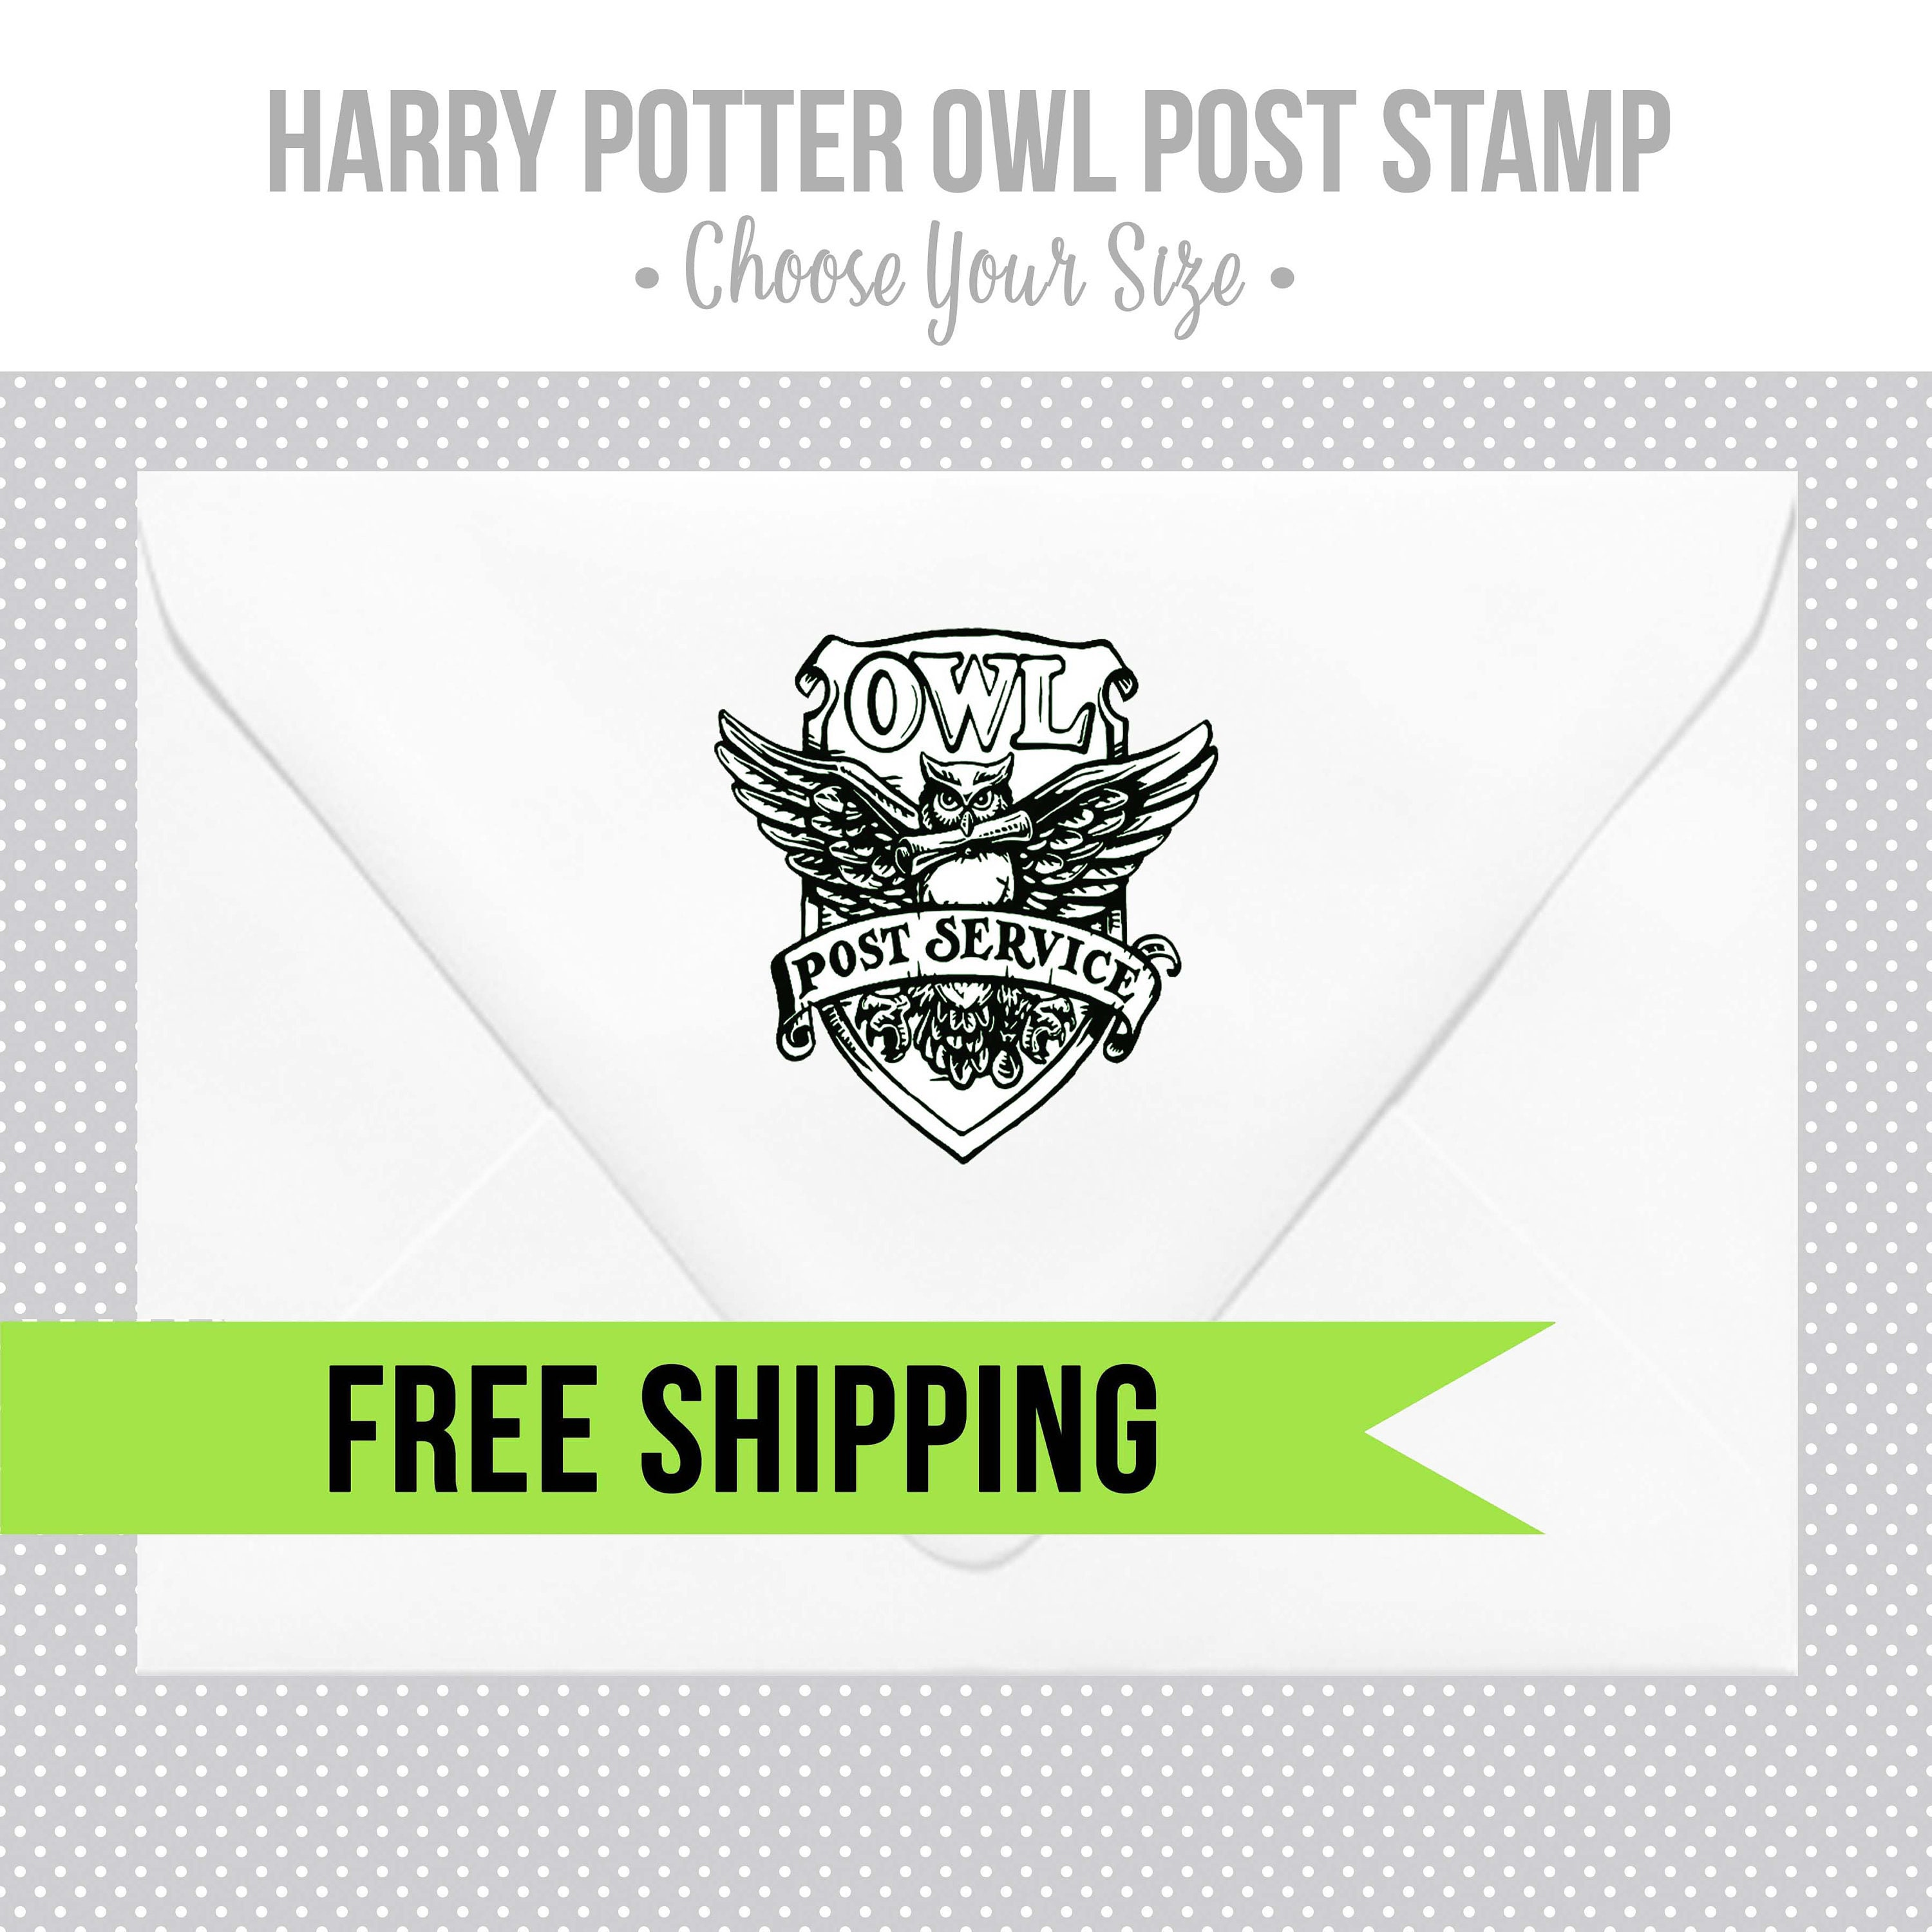 Hogwarts Owl Post Stamp Harry Potter Wood Rubber